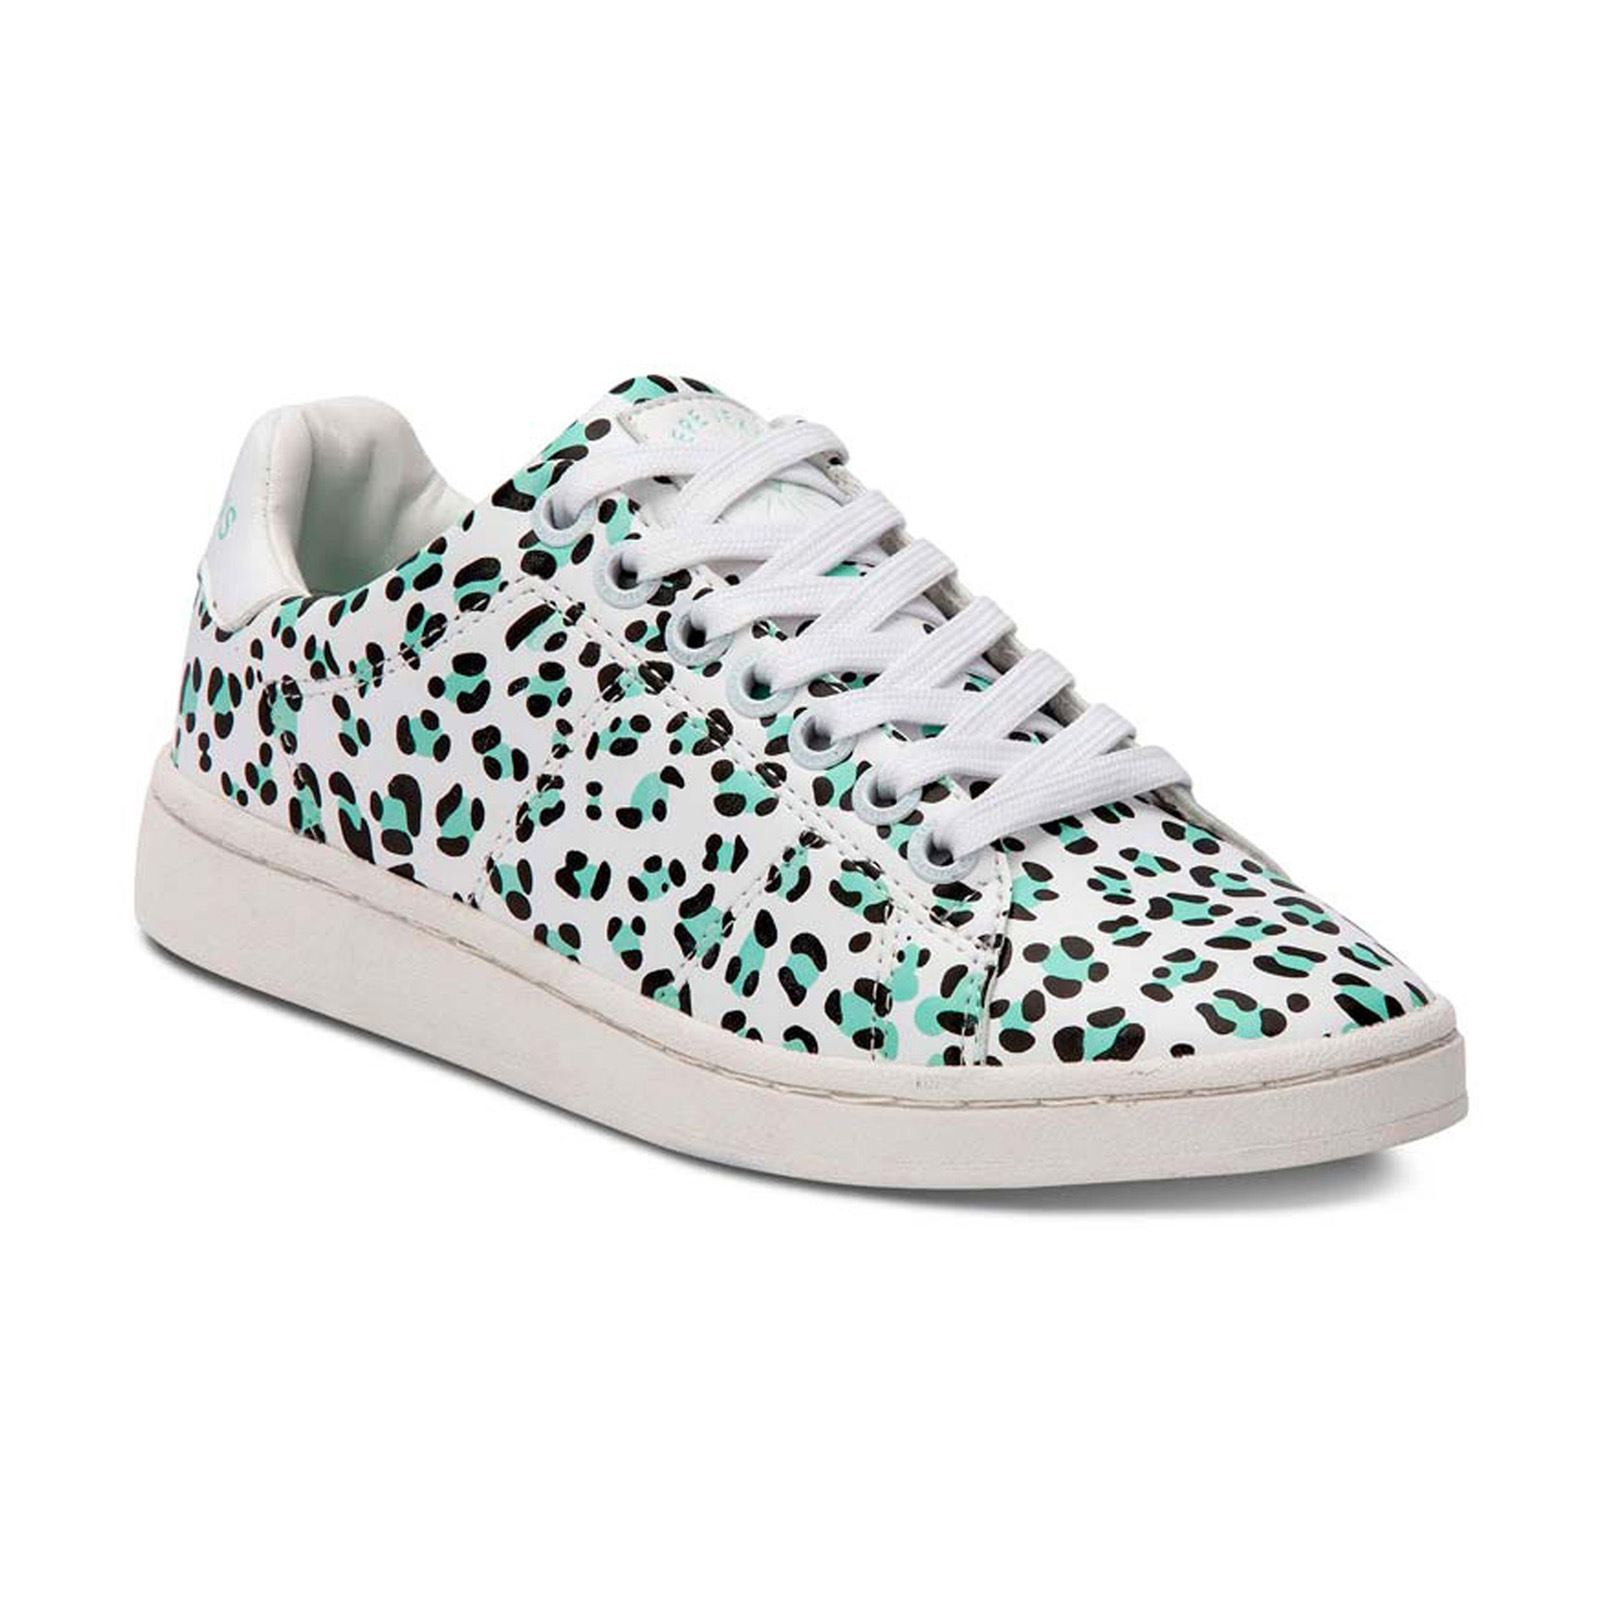 Pepe Jeans Footwear Club - Baskets - imprimé